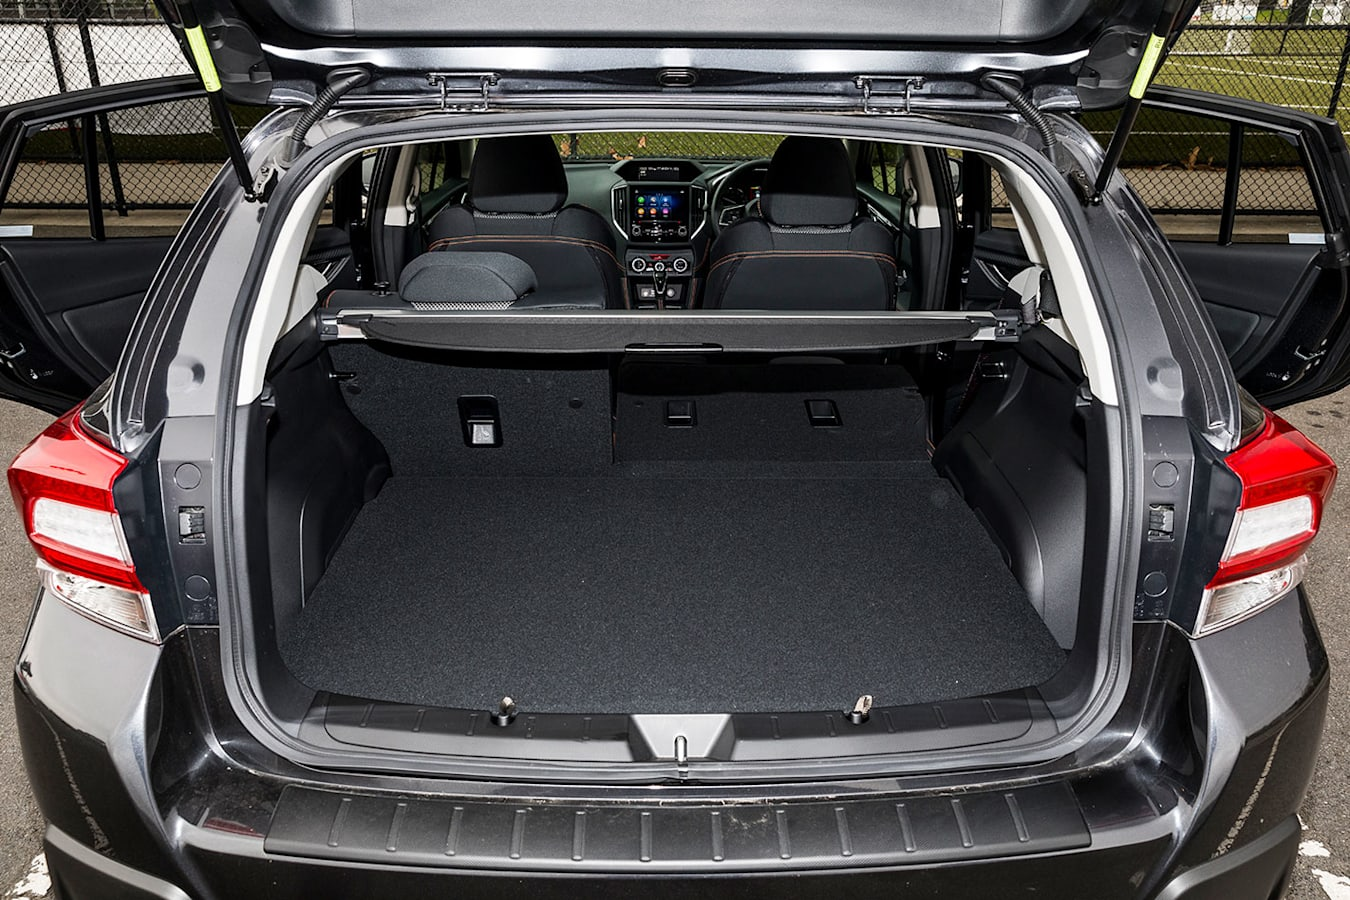 Ford Focus Active boot space